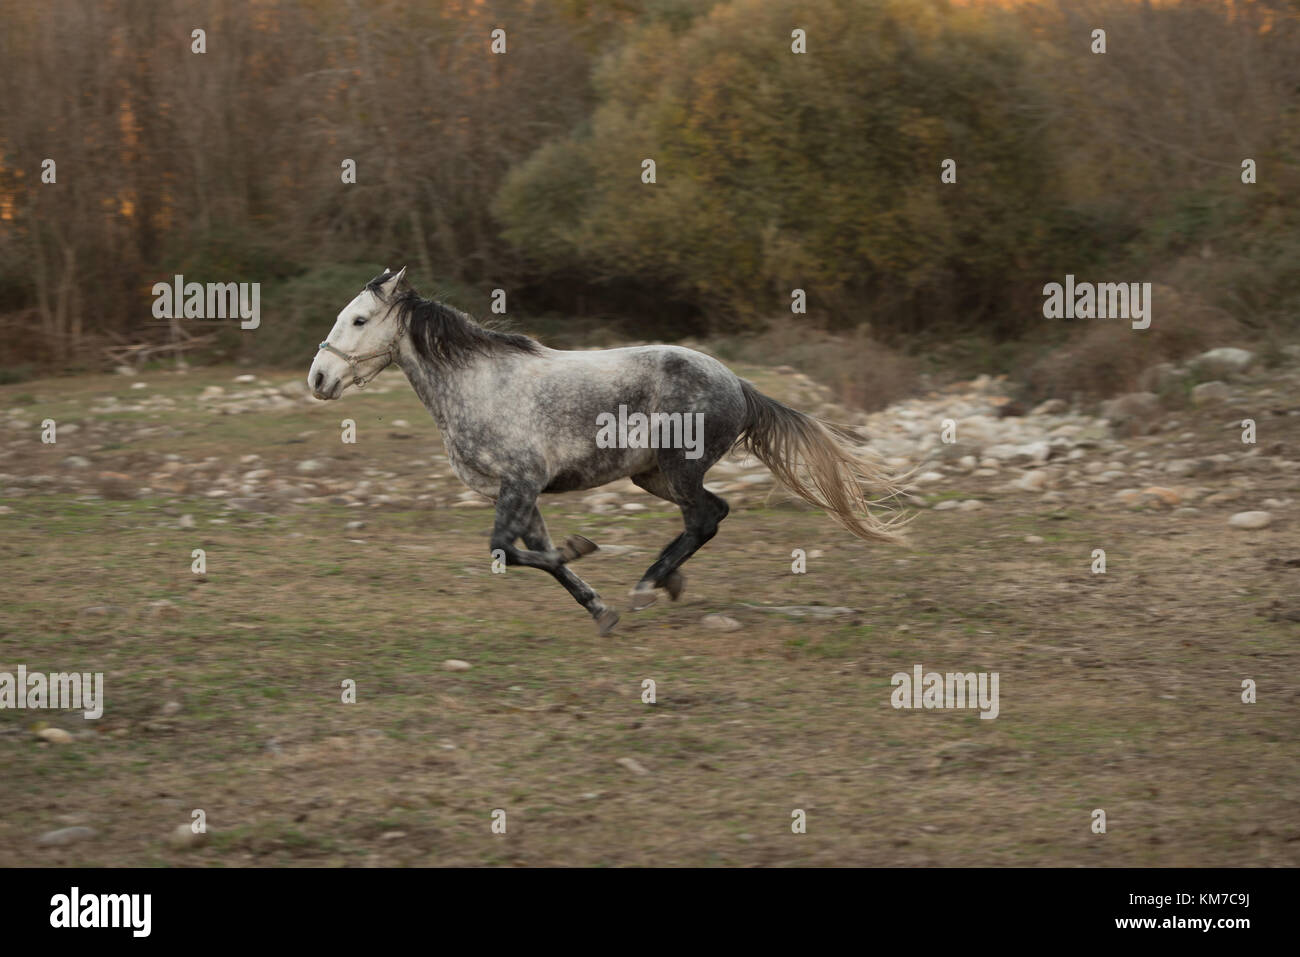 A white and black horse run free on a ranch in Jerte, Extremadura, Spain. - Stock Image